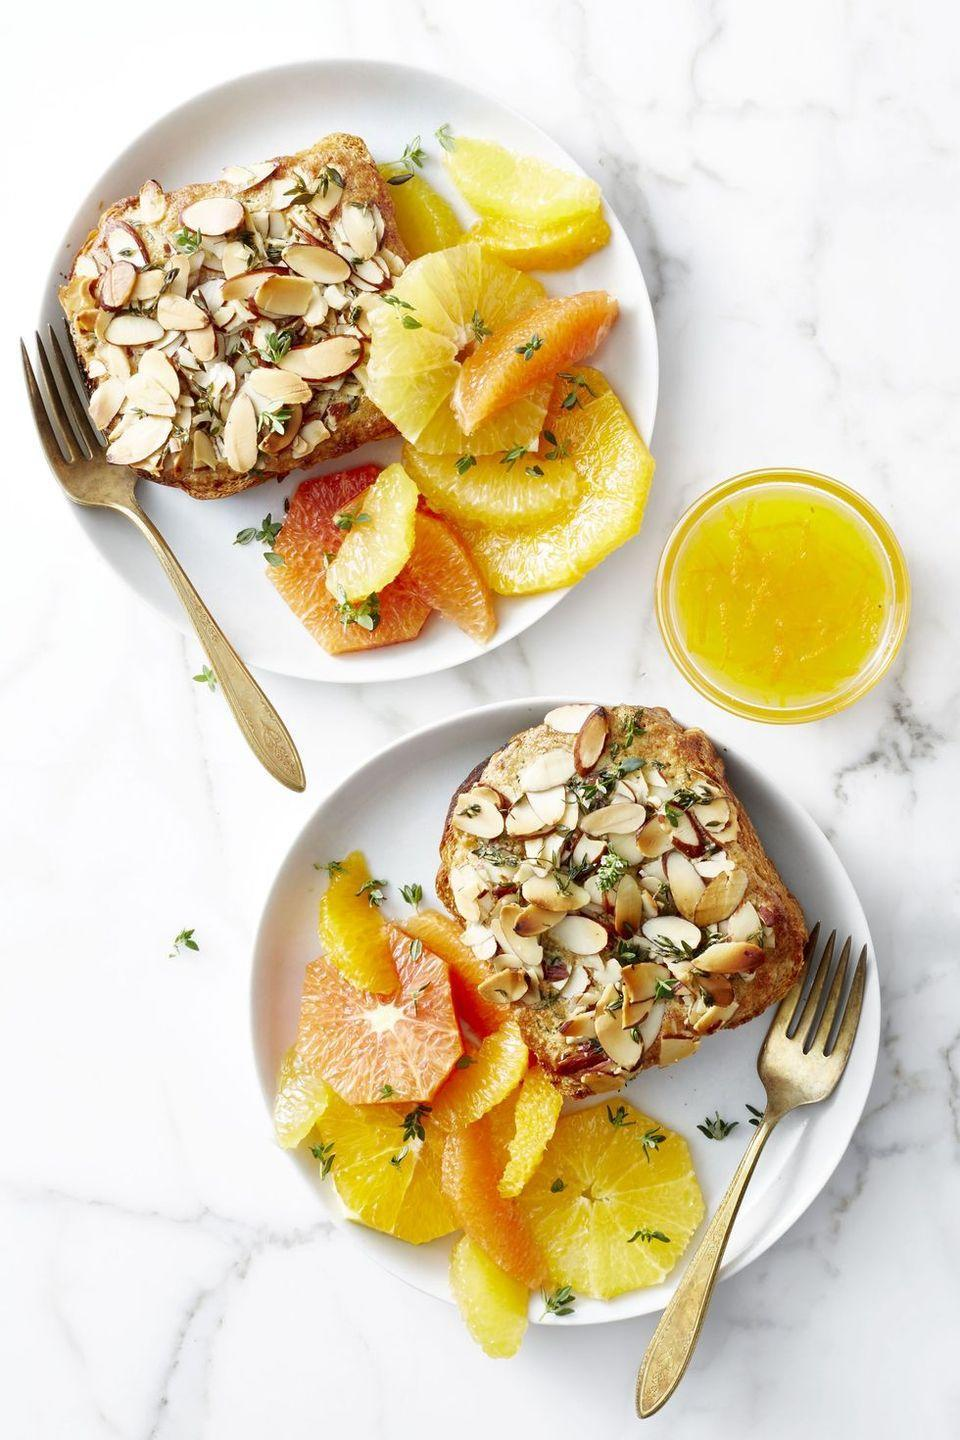 "<p>Nutty sliced almonds with orange zest makes this the perfect salty and sweet breakfast.</p><p><em><a href=""https://www.goodhousekeeping.com/food-recipes/a46689/twice-baked-citrus-almond-brioche/"" rel=""nofollow noopener"" target=""_blank"" data-ylk=""slk:Get the recipe for Twice-Baked Citrus-Almond Brioche »"" class=""link rapid-noclick-resp"">Get the recipe for Twice-Baked Citrus-Almond Brioche »</a></em></p>"